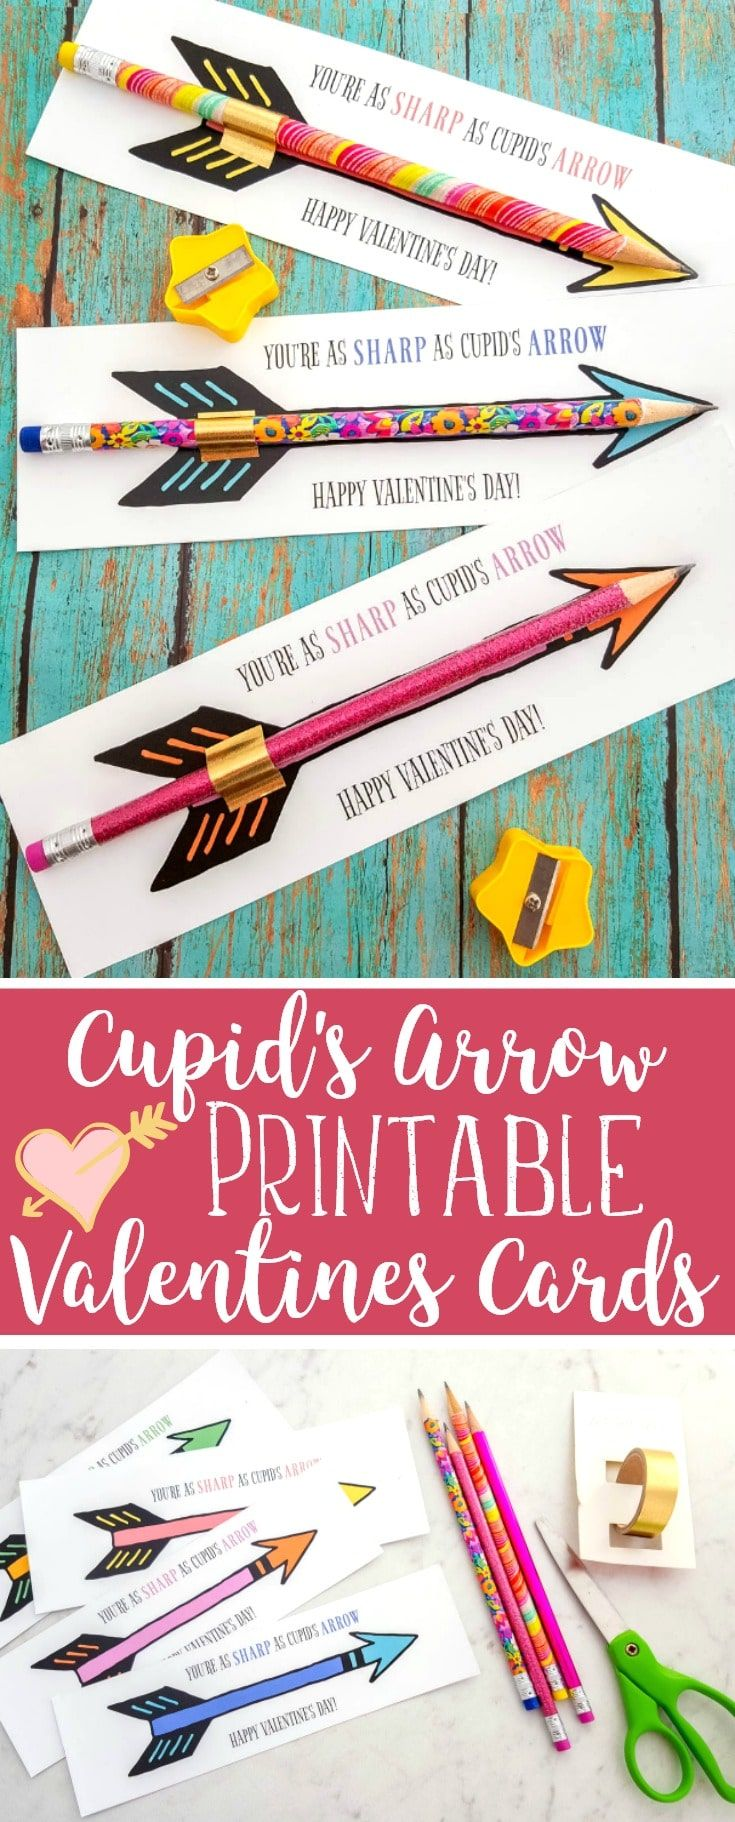 FREE Cupid's Arrow Pencil Printable Valentines Cards #ValentinesDay